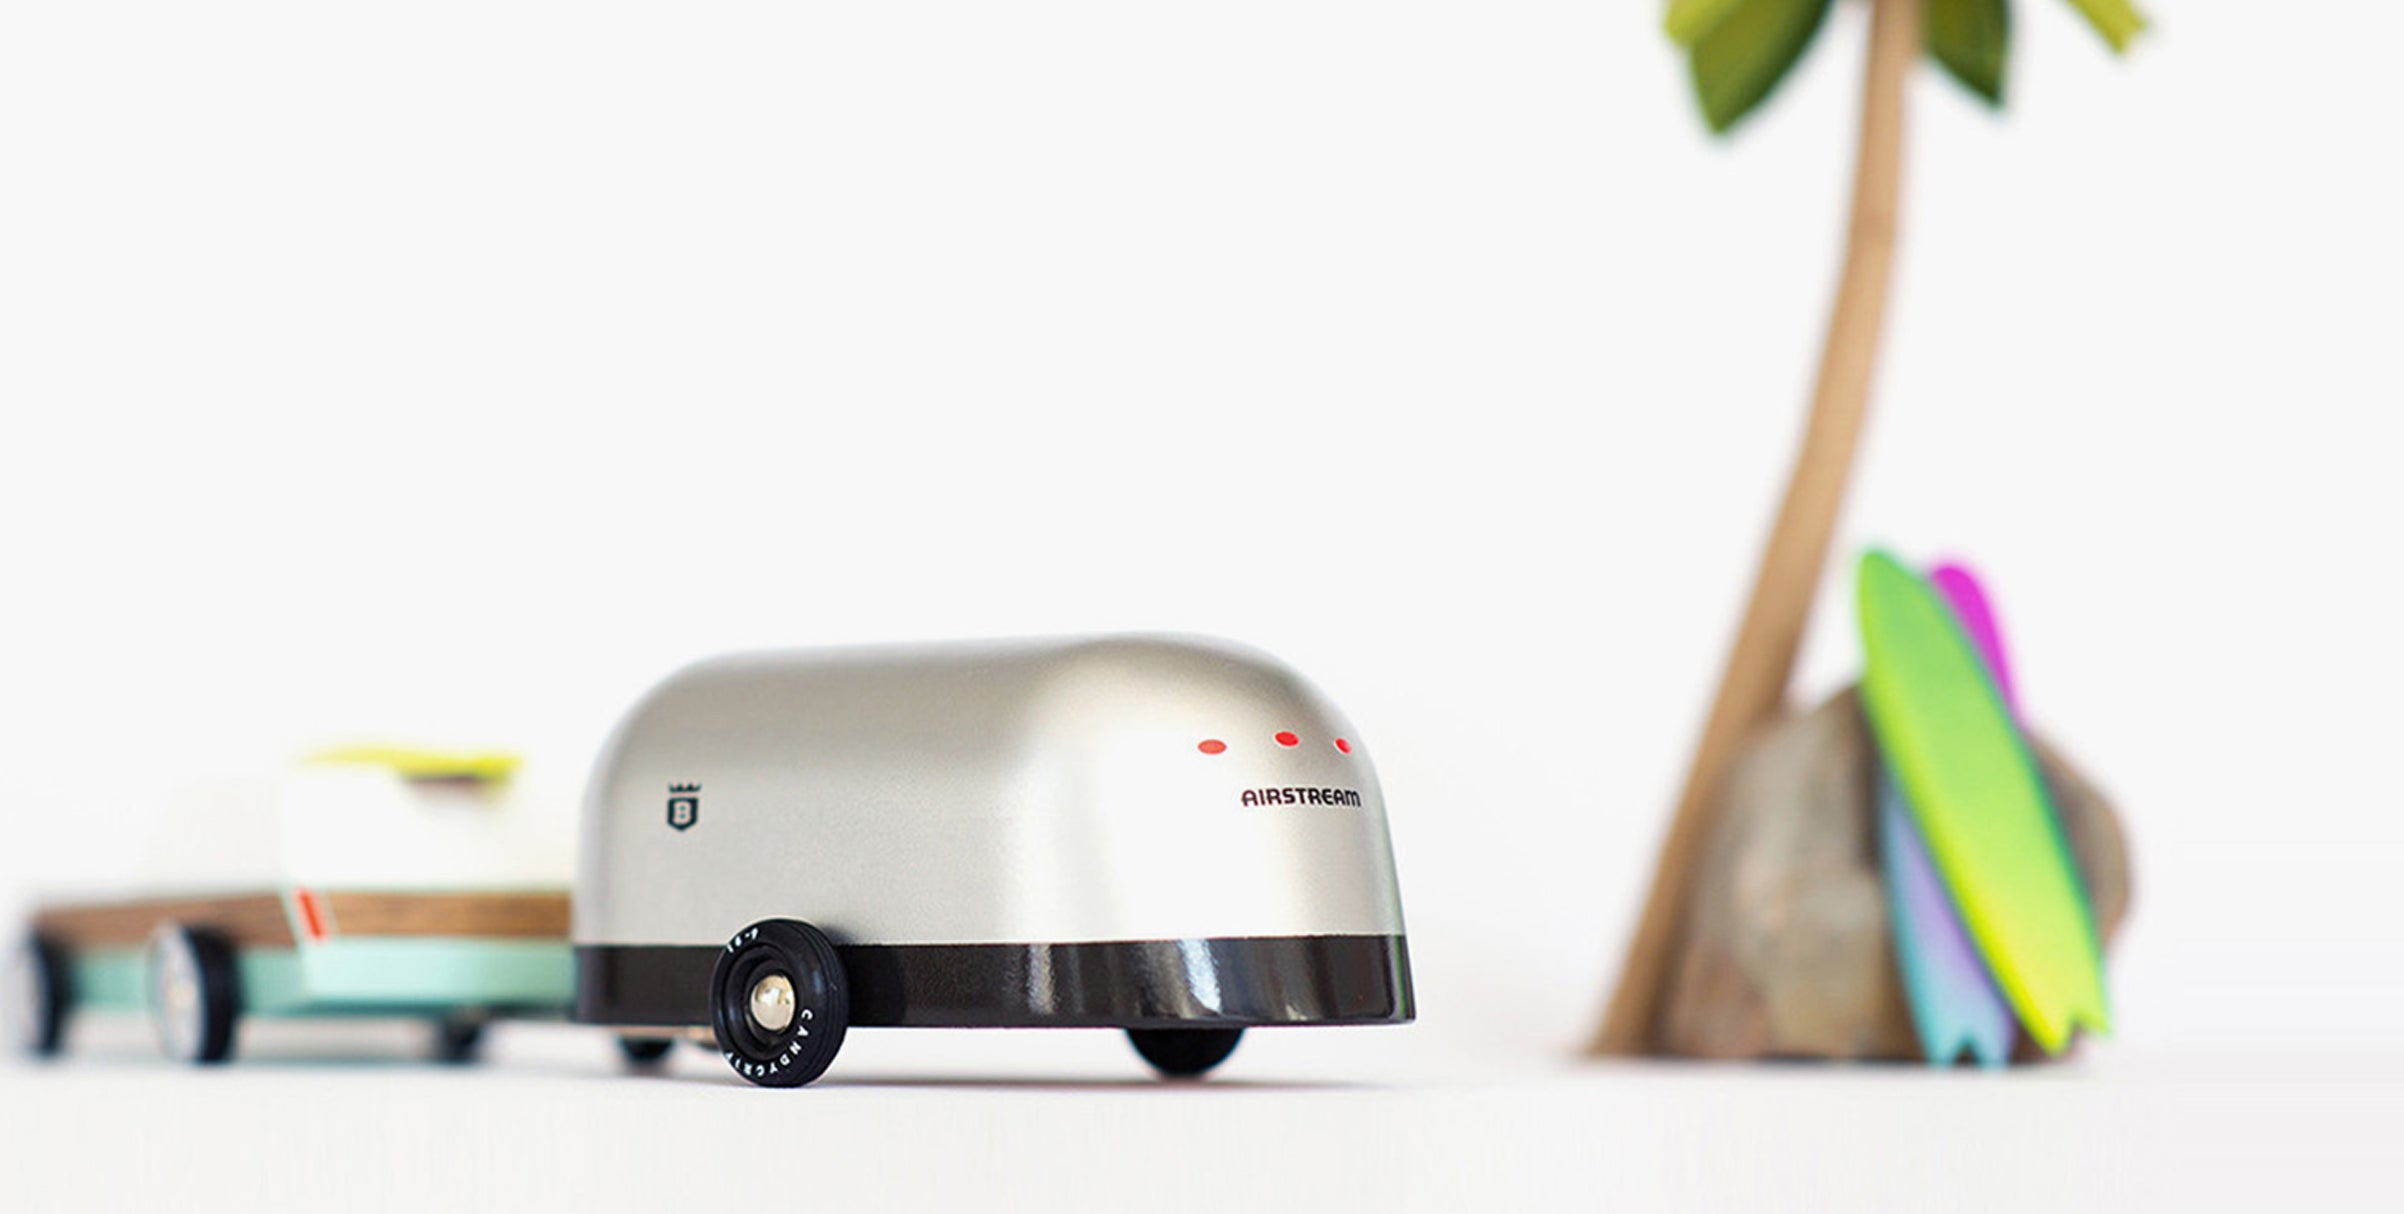 Camper Airstream Wooden Toy